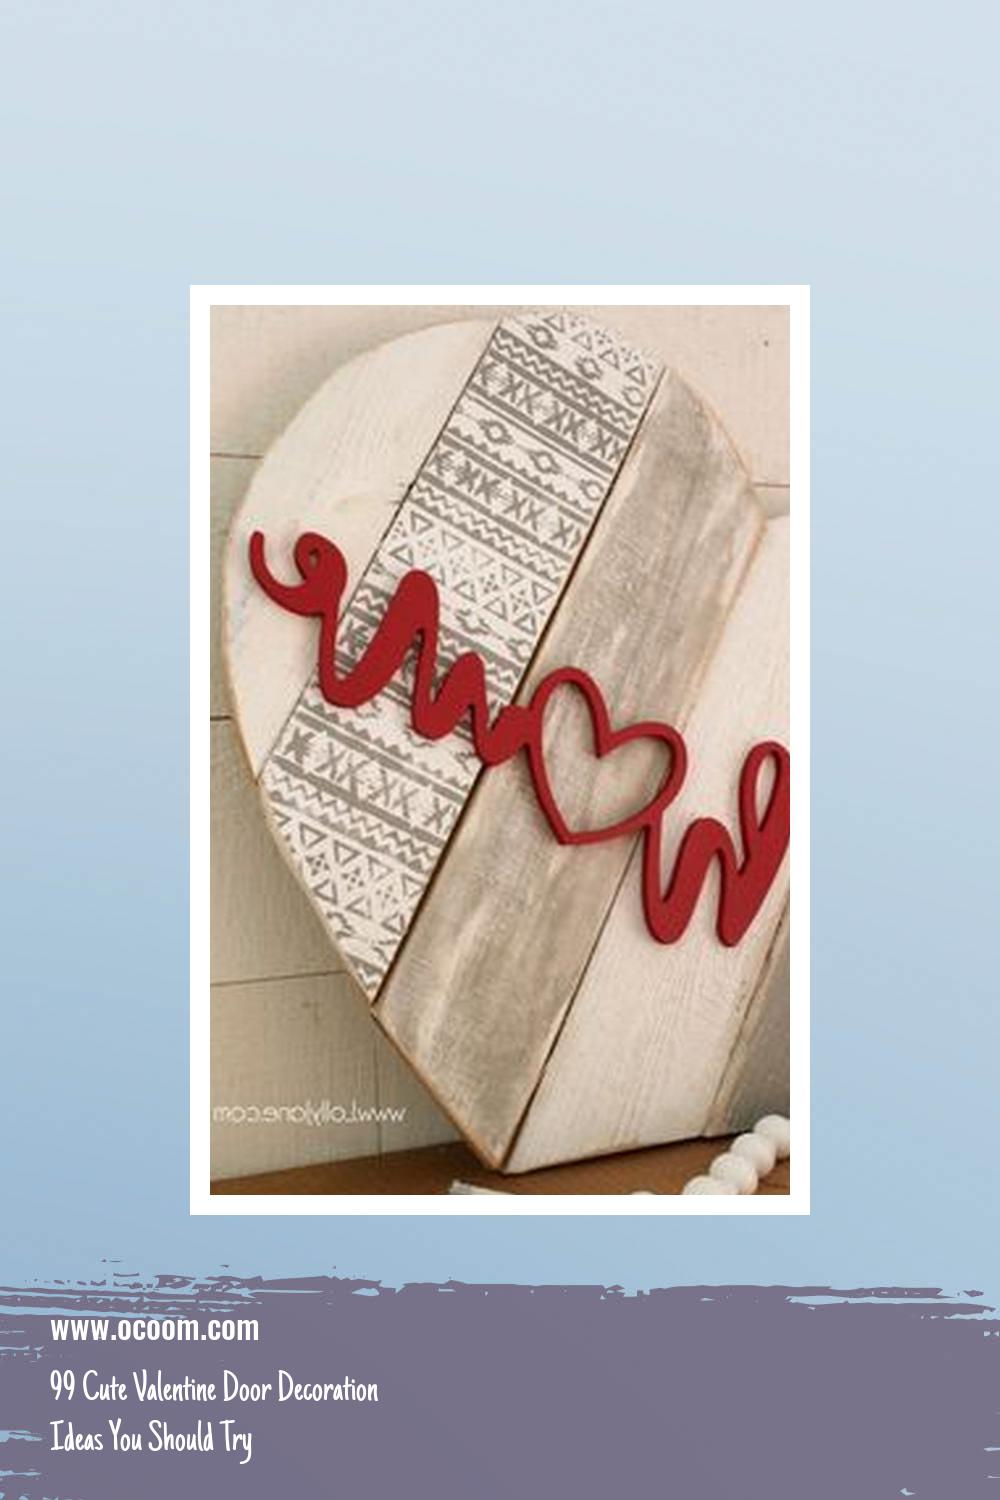 99 Cute Valentine Door Decoration Ideas You Should Try 16